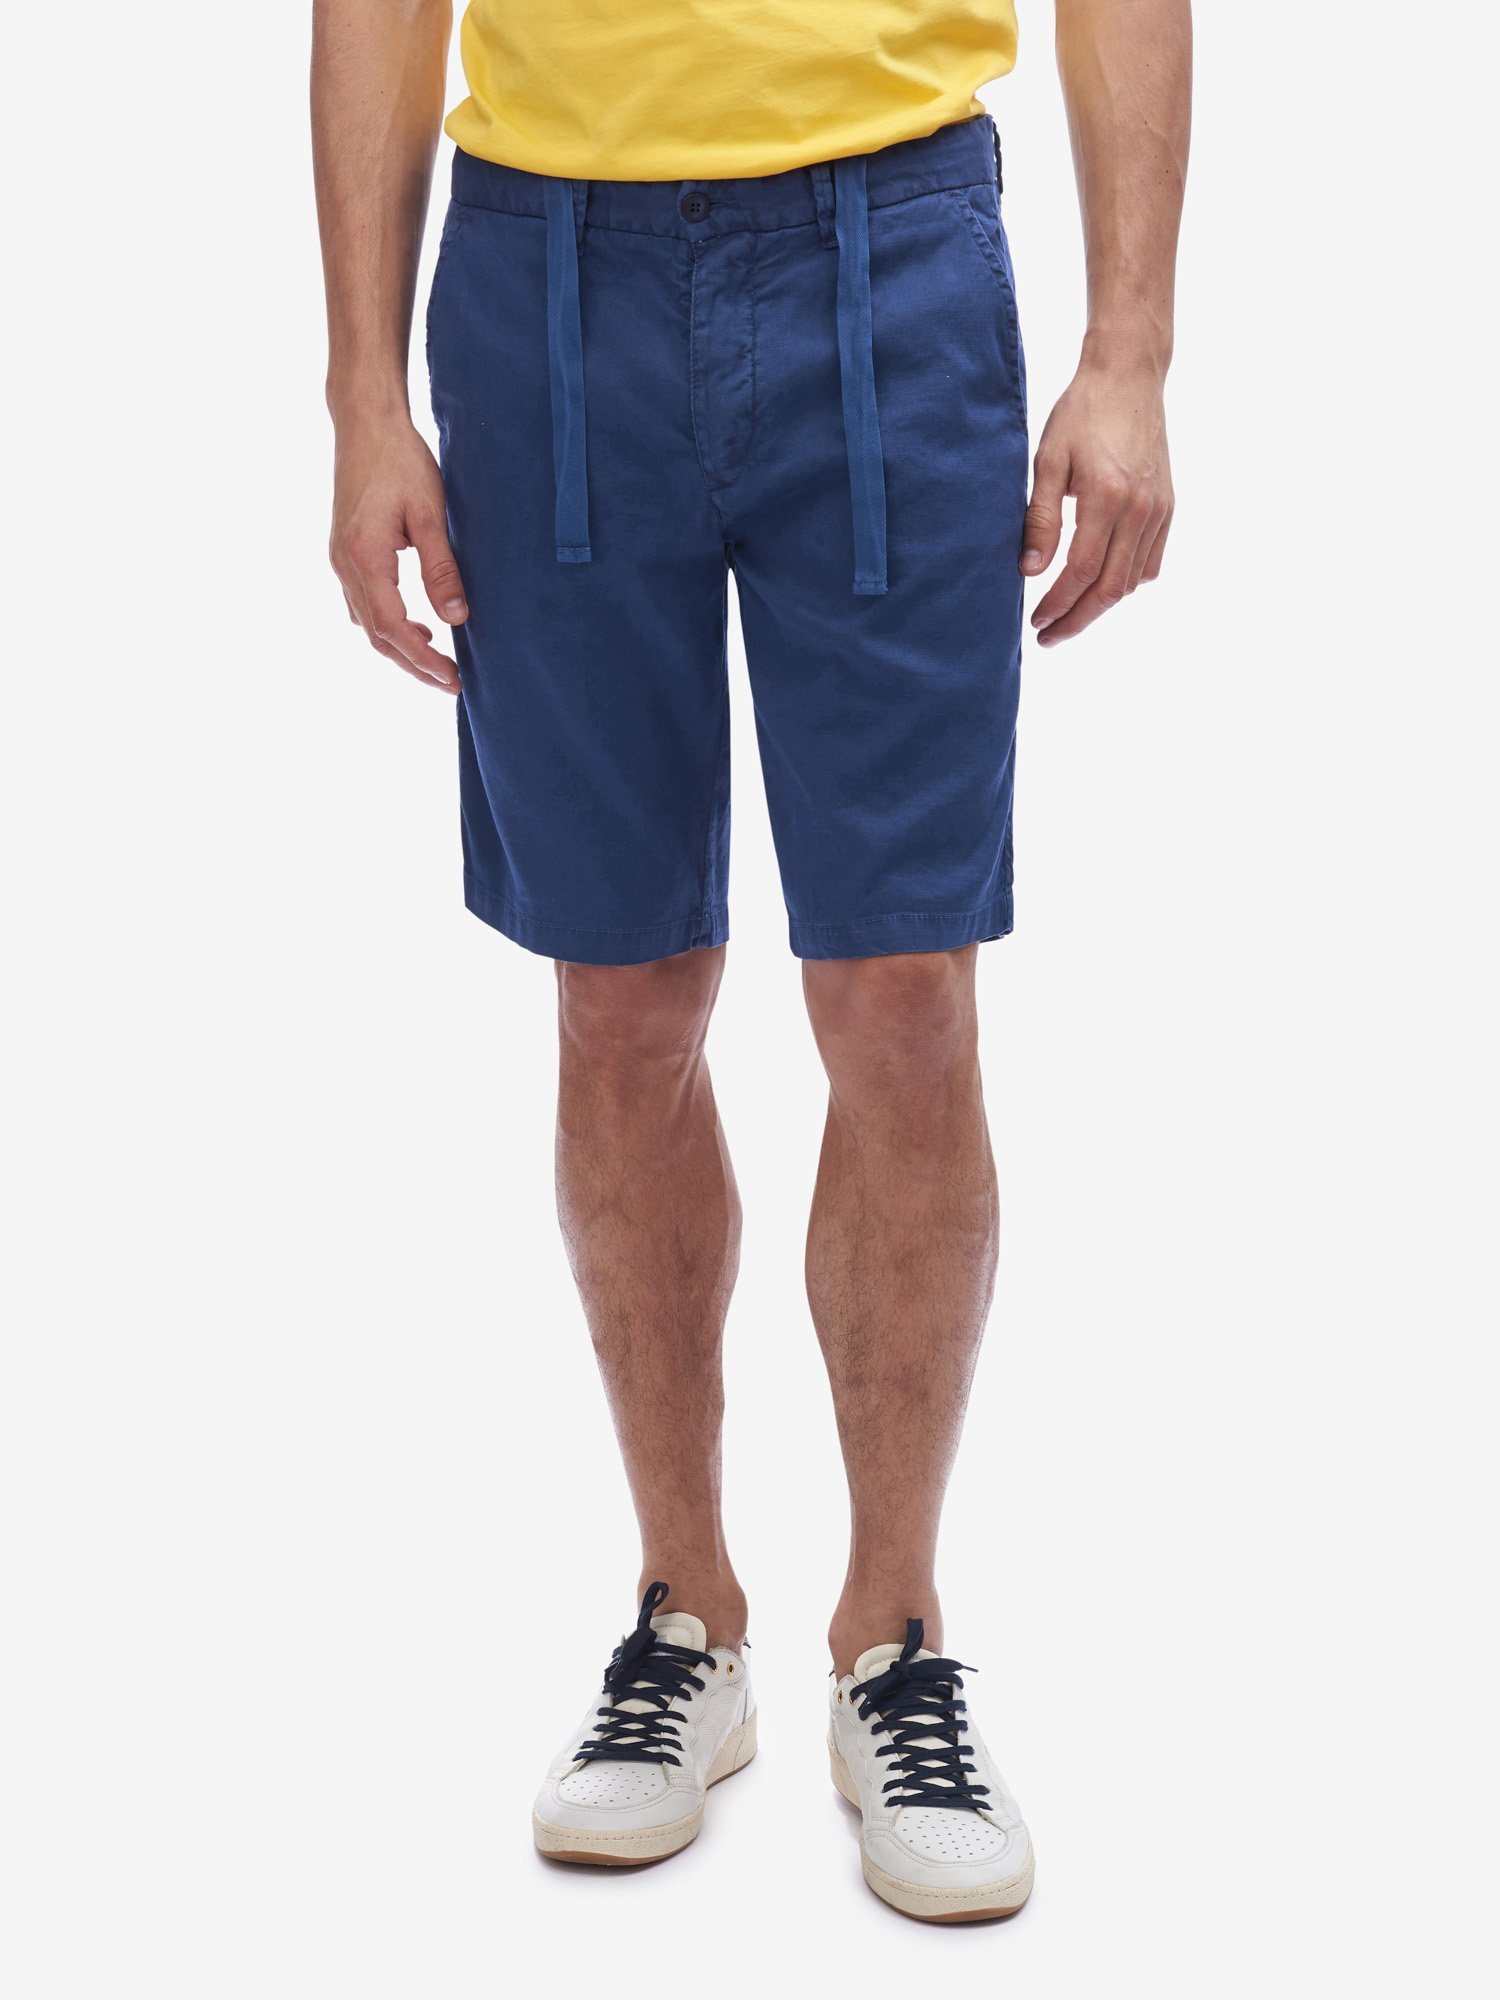 LINEN AND COTTON BERMUDA SHORTS - Blauer